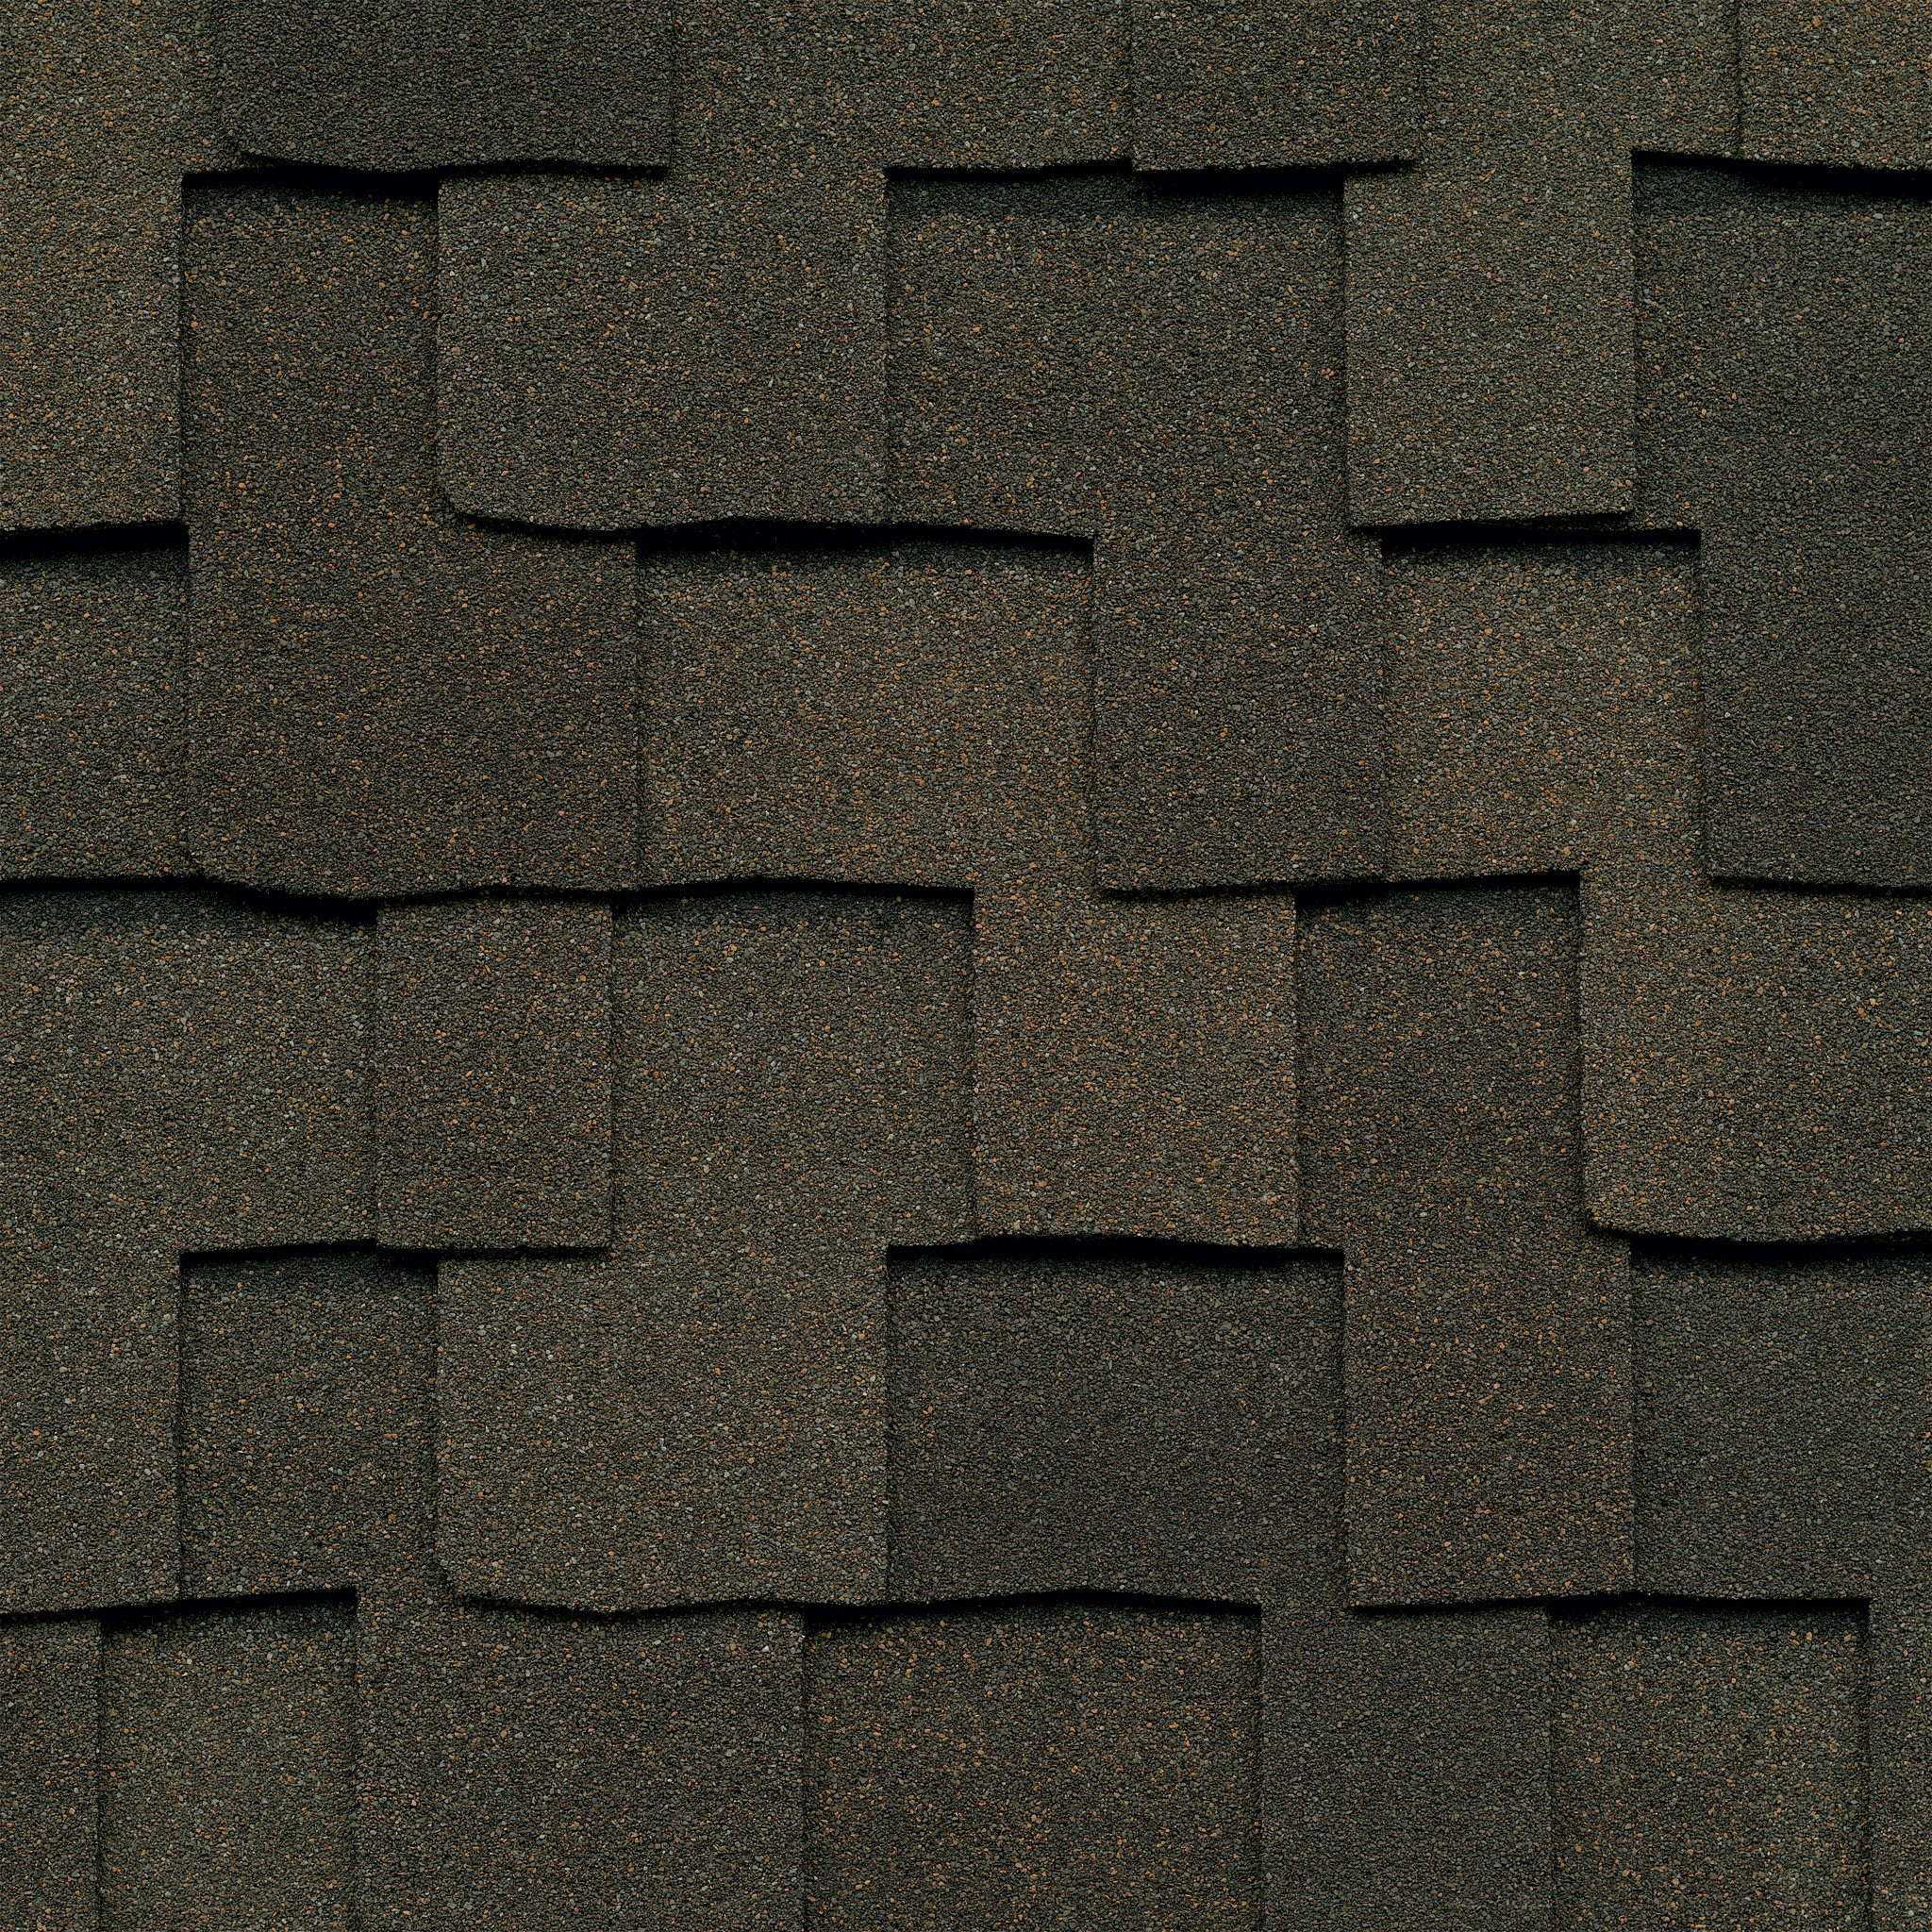 Close up photo of GAF's Grand Sequoia Weathered Wood shingle swatch